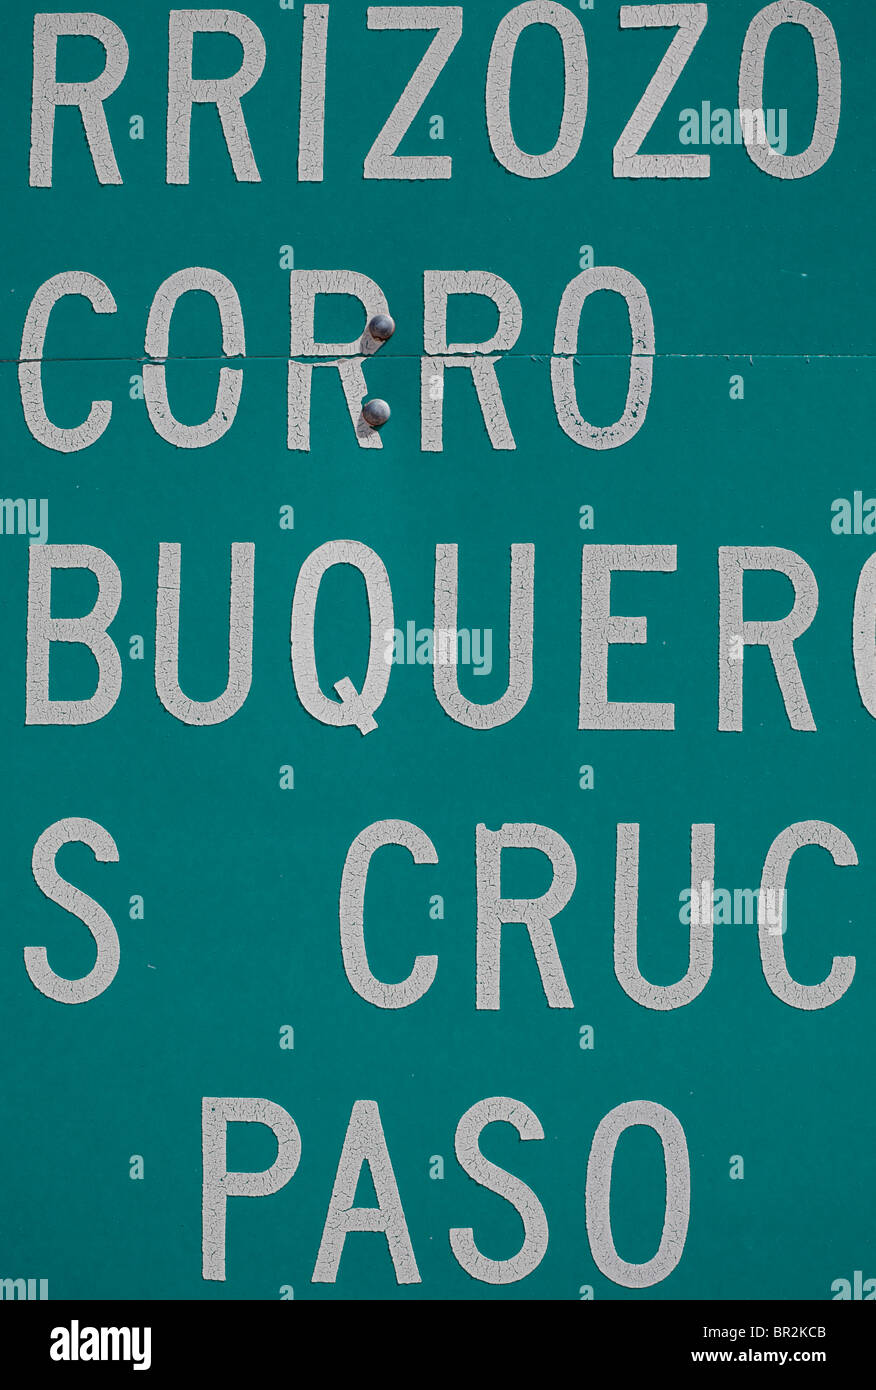 Abstract view of sign in New Mexico referring to various towns: Carrizozo, Socorro, Albuquerque, Las Cruces, El - Stock Image